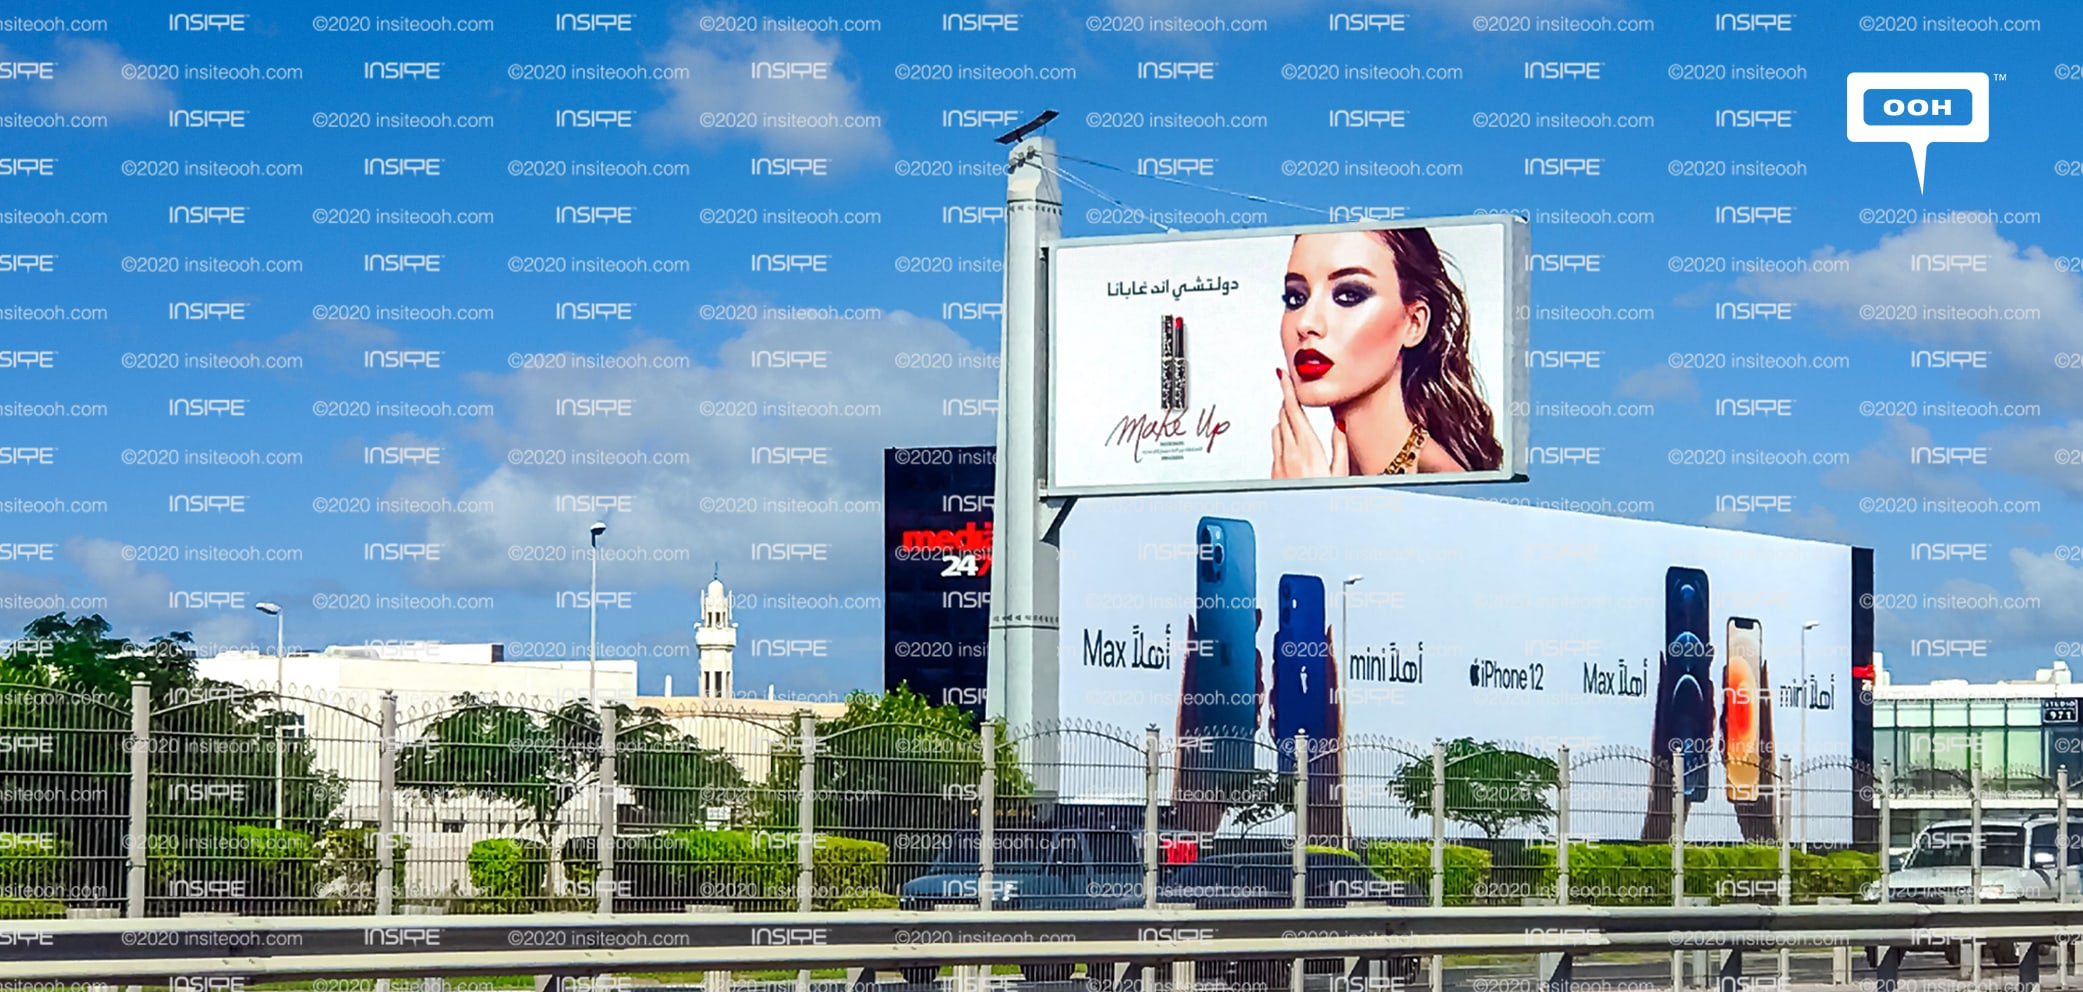 Dolce Gabbana Fires Up Dubai S Roads With The Passionlips Of Giulia Maenza Insite Ooh Media Platform Outdoor Advertising Campaigns Giulia maenza goes seductively glam with a look featuring the perfect powerful red lip. dolce gabbana fires up dubai s roads